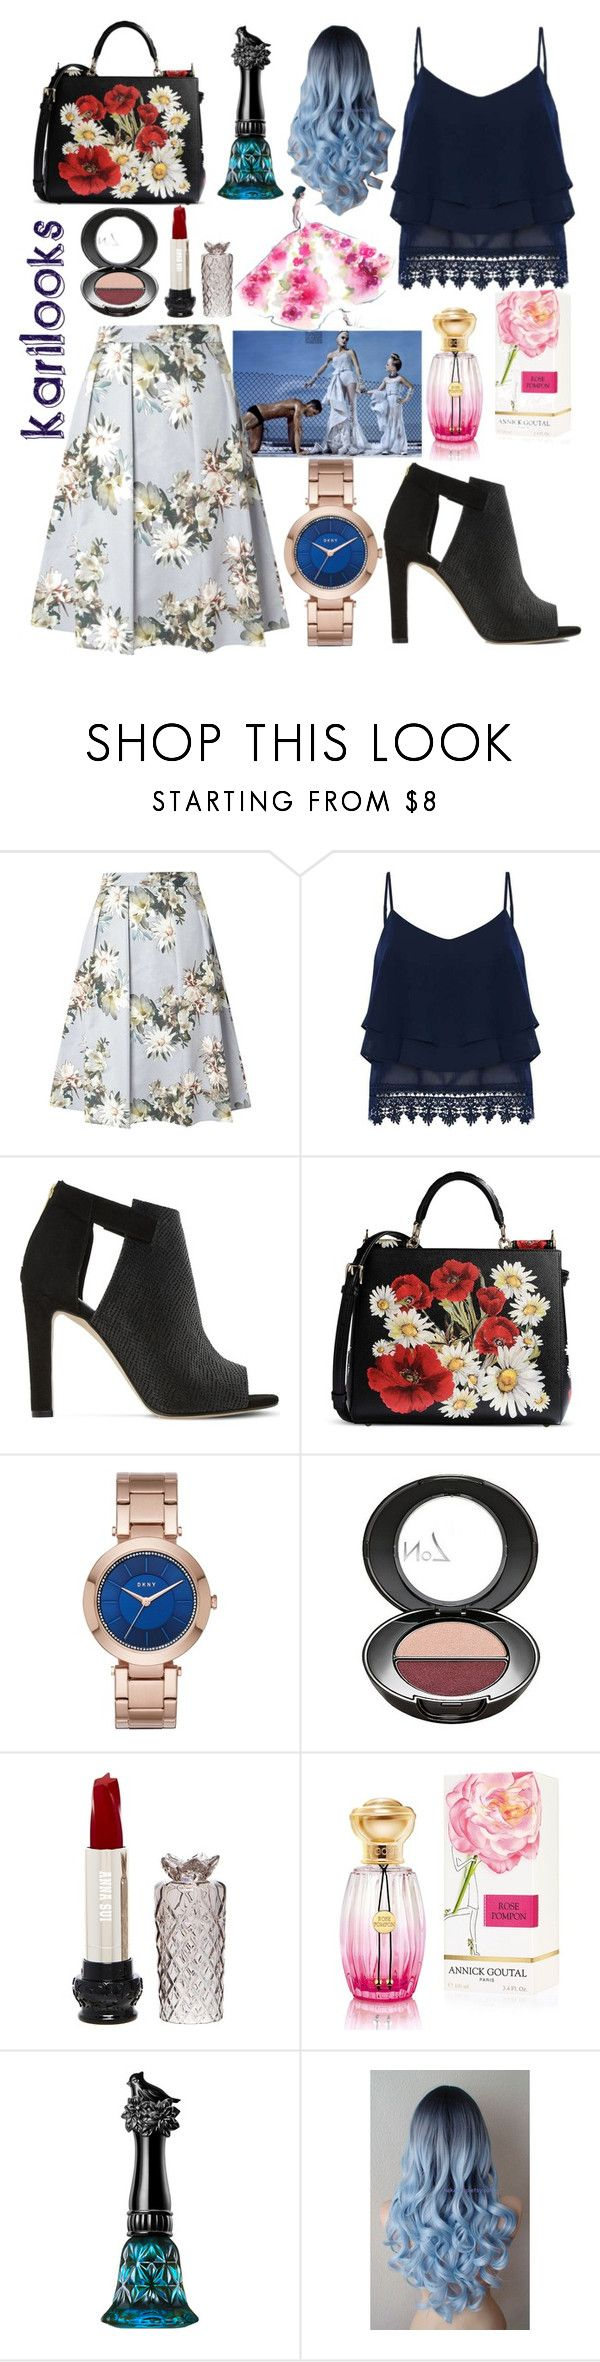 """""""Flowers... 🌼"""" by karilooks ❤ liked on Polyvore featuring Daphne, Dorothy Perkins, Dune, Dolce&Gabbana, DKNY, Boots No7, Anna Sui and Annick Goutal"""